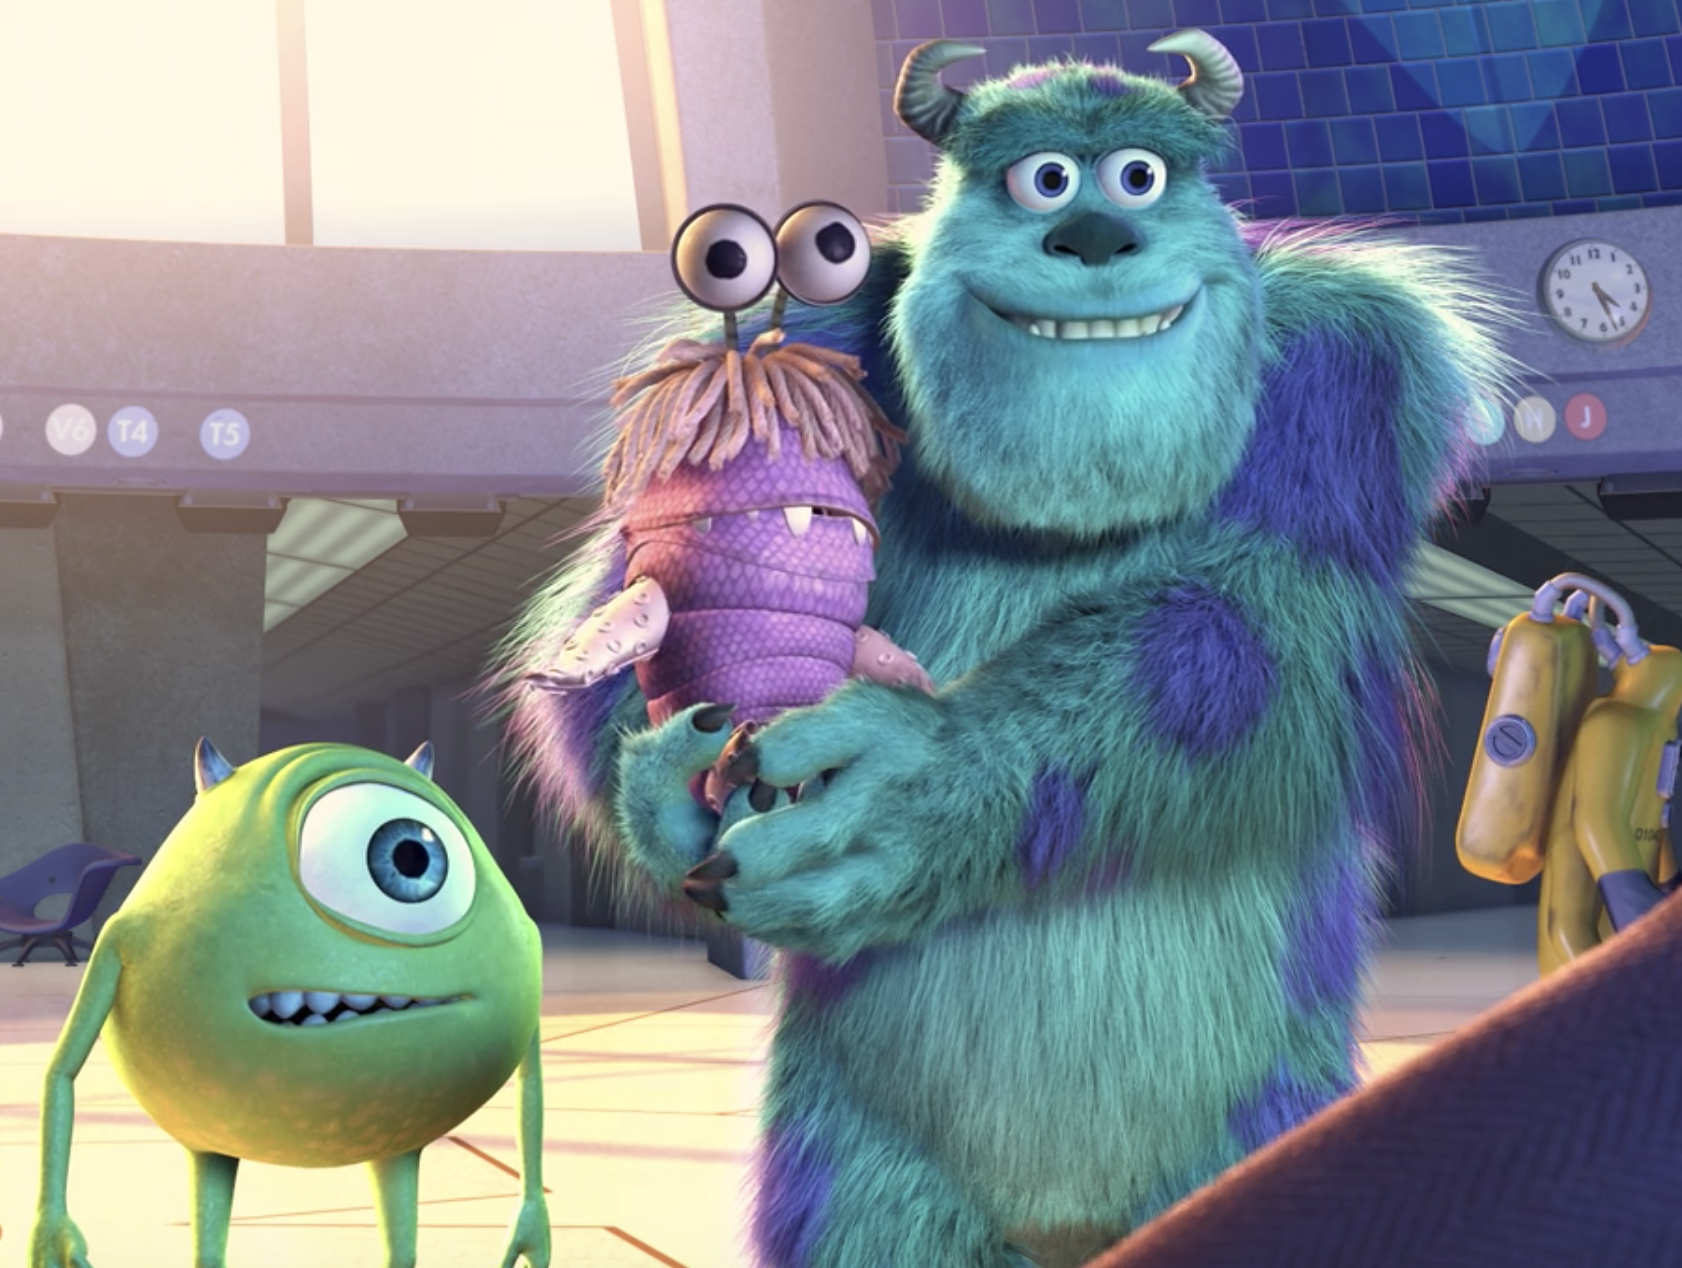 Mike smiles a crooked smile while Sulley smiles an equally awkward smile as he holds Boo in a monster suit